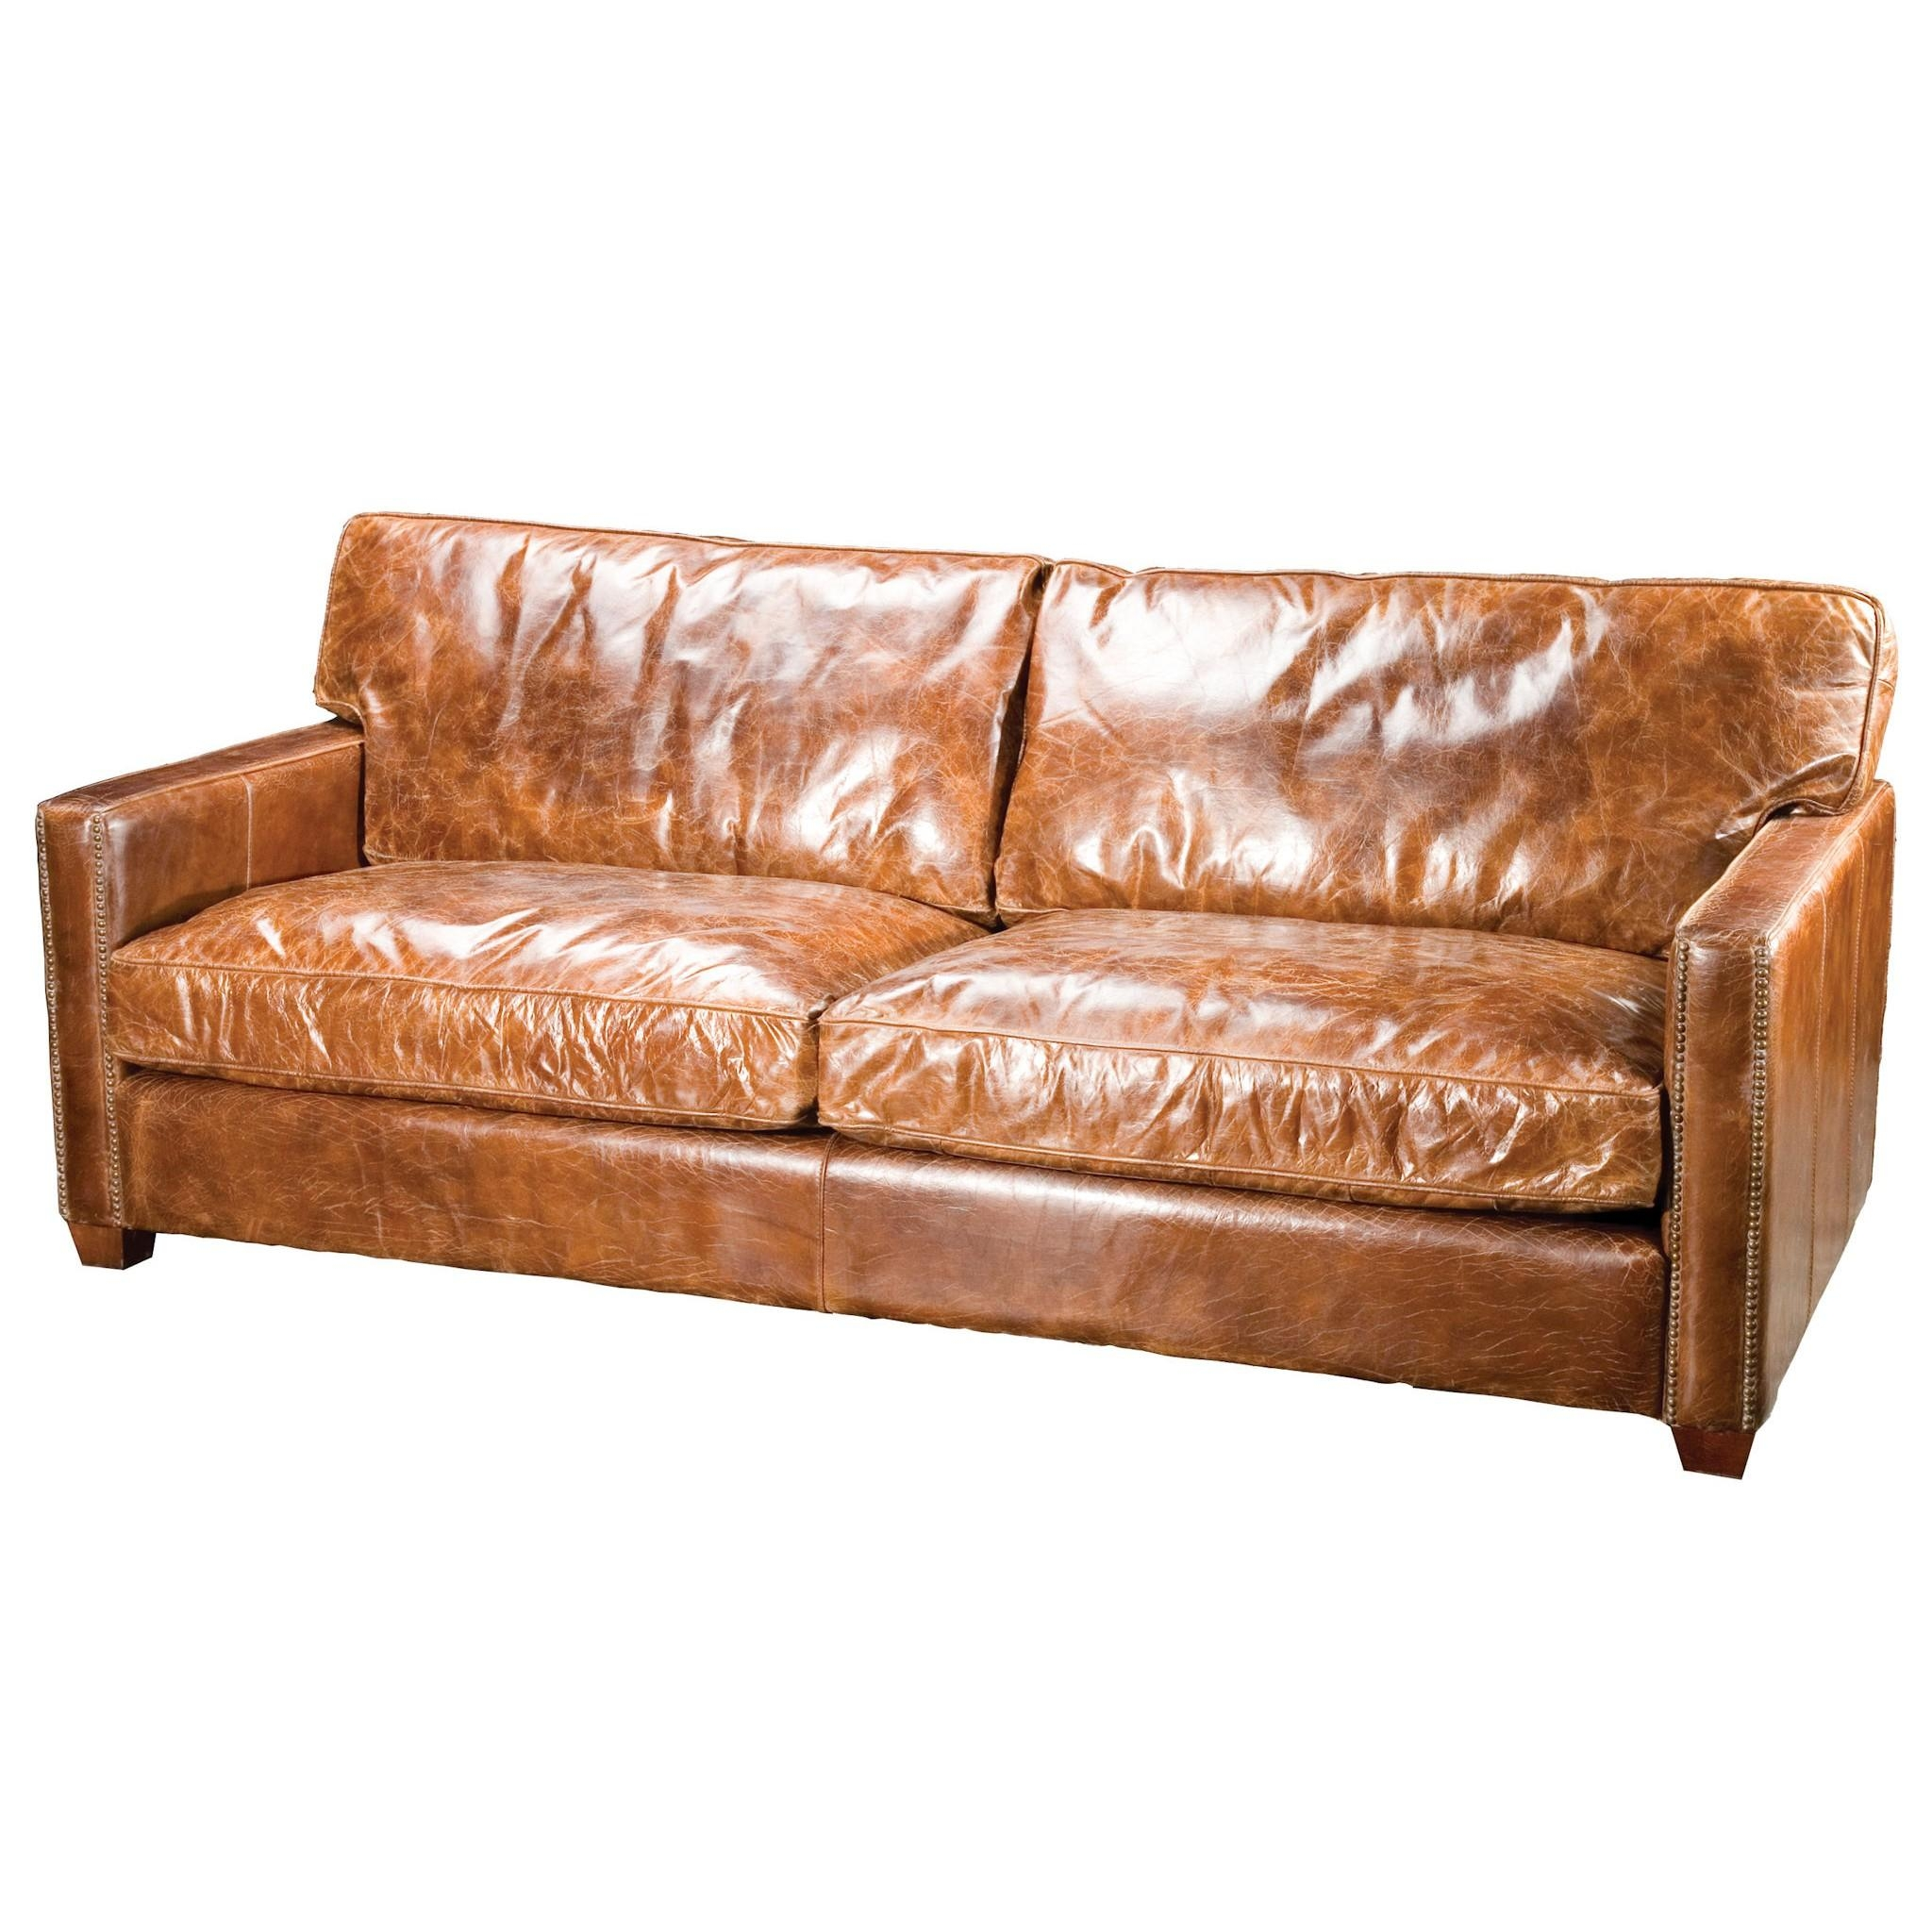 thomasville benjamin leather sofa narrow side table 20 best sectionals ideas